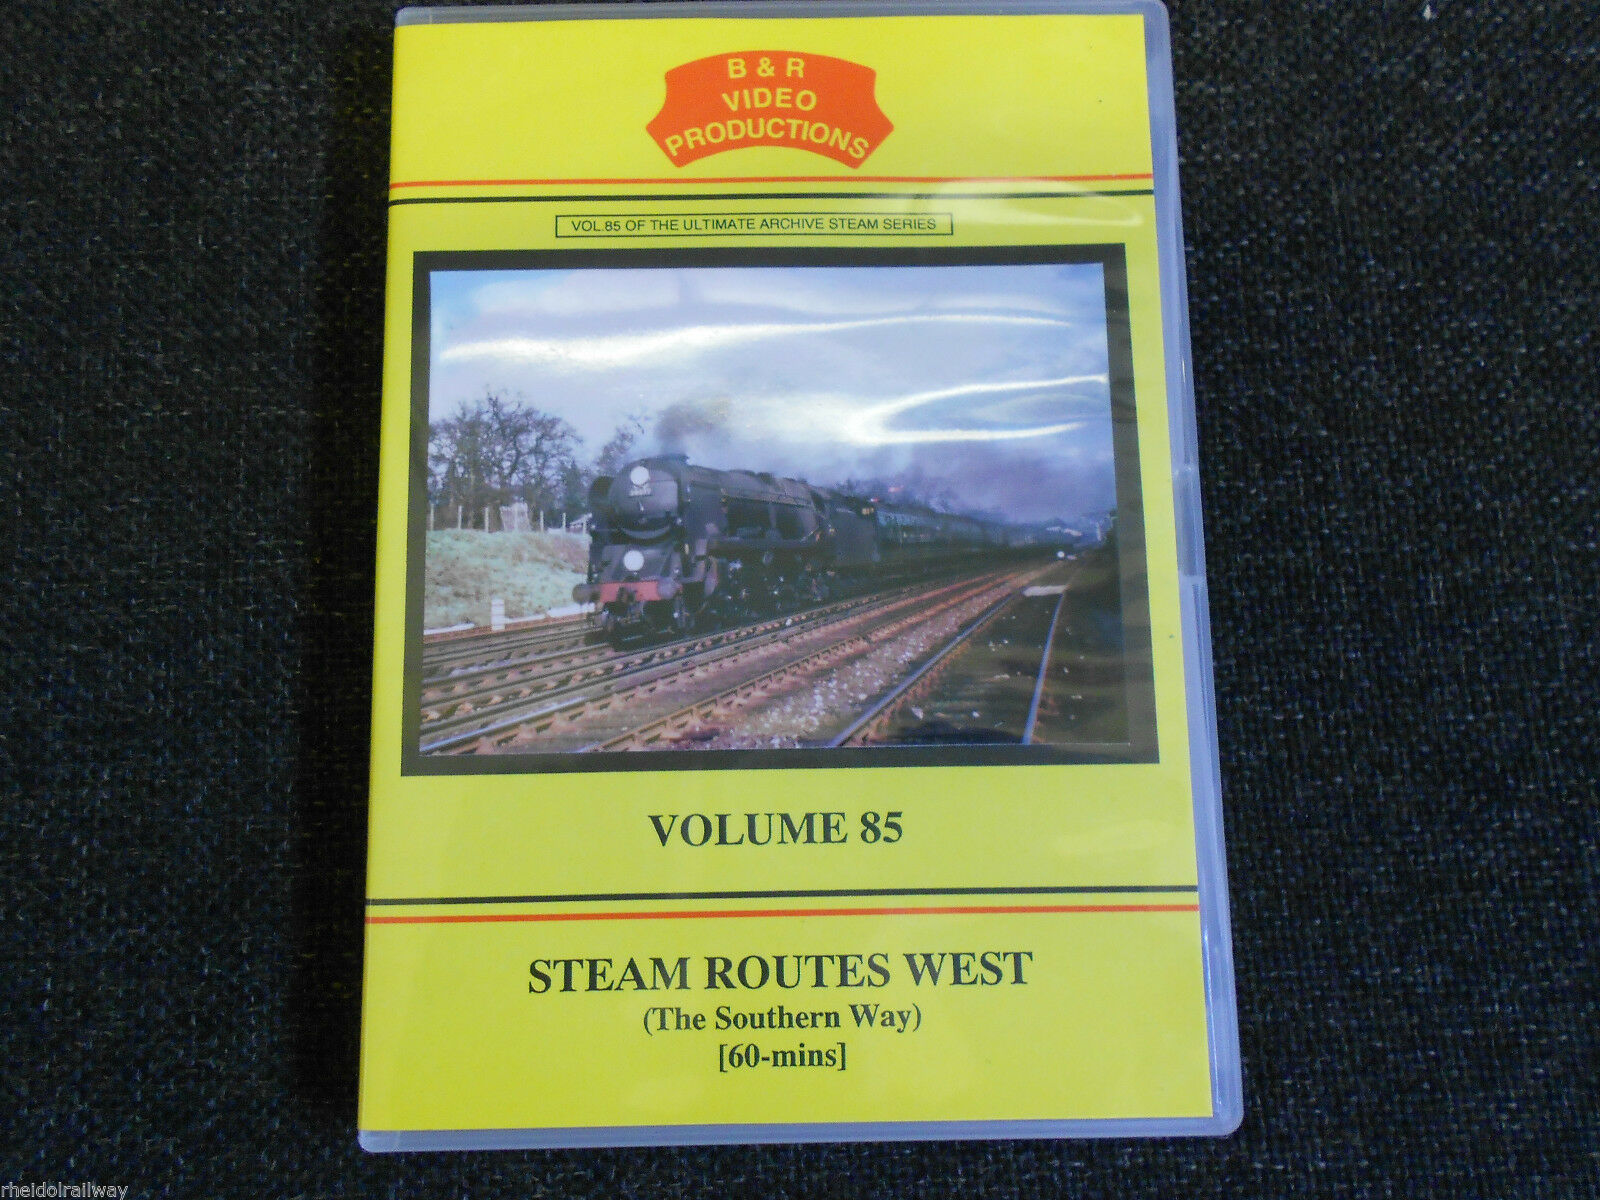 Ludgershall, Sidmouth, Wadebridge, Barnstaple, Steam Routes West B&R Vol 85 DVD